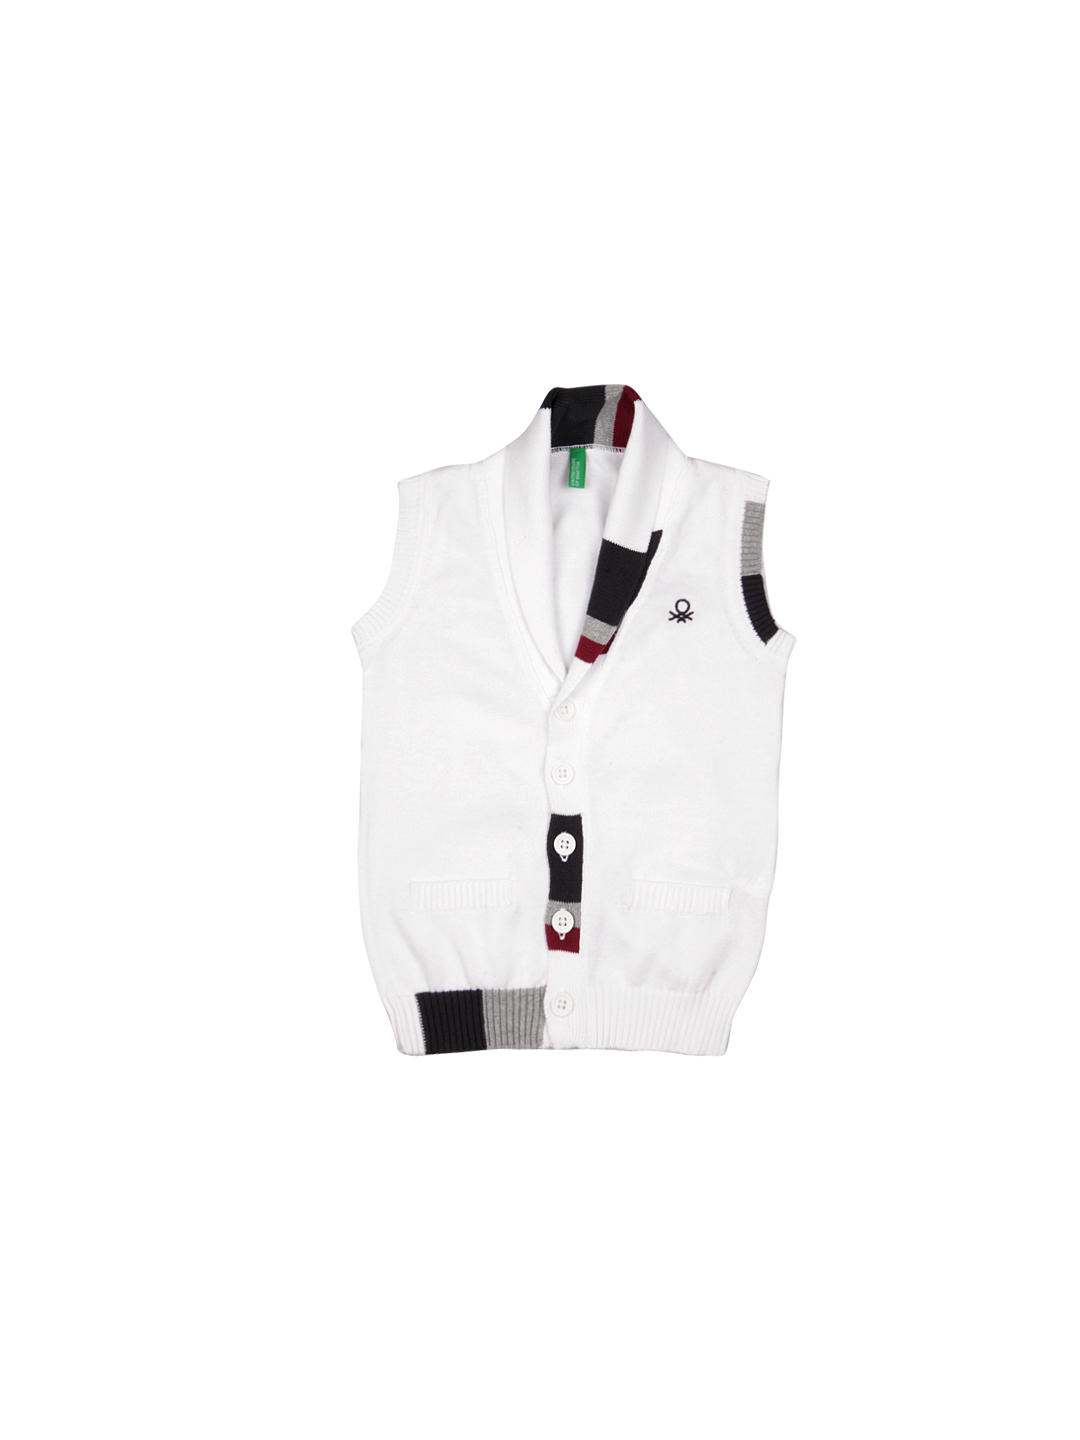 United Colors of Benetton Boys White Waistcoat